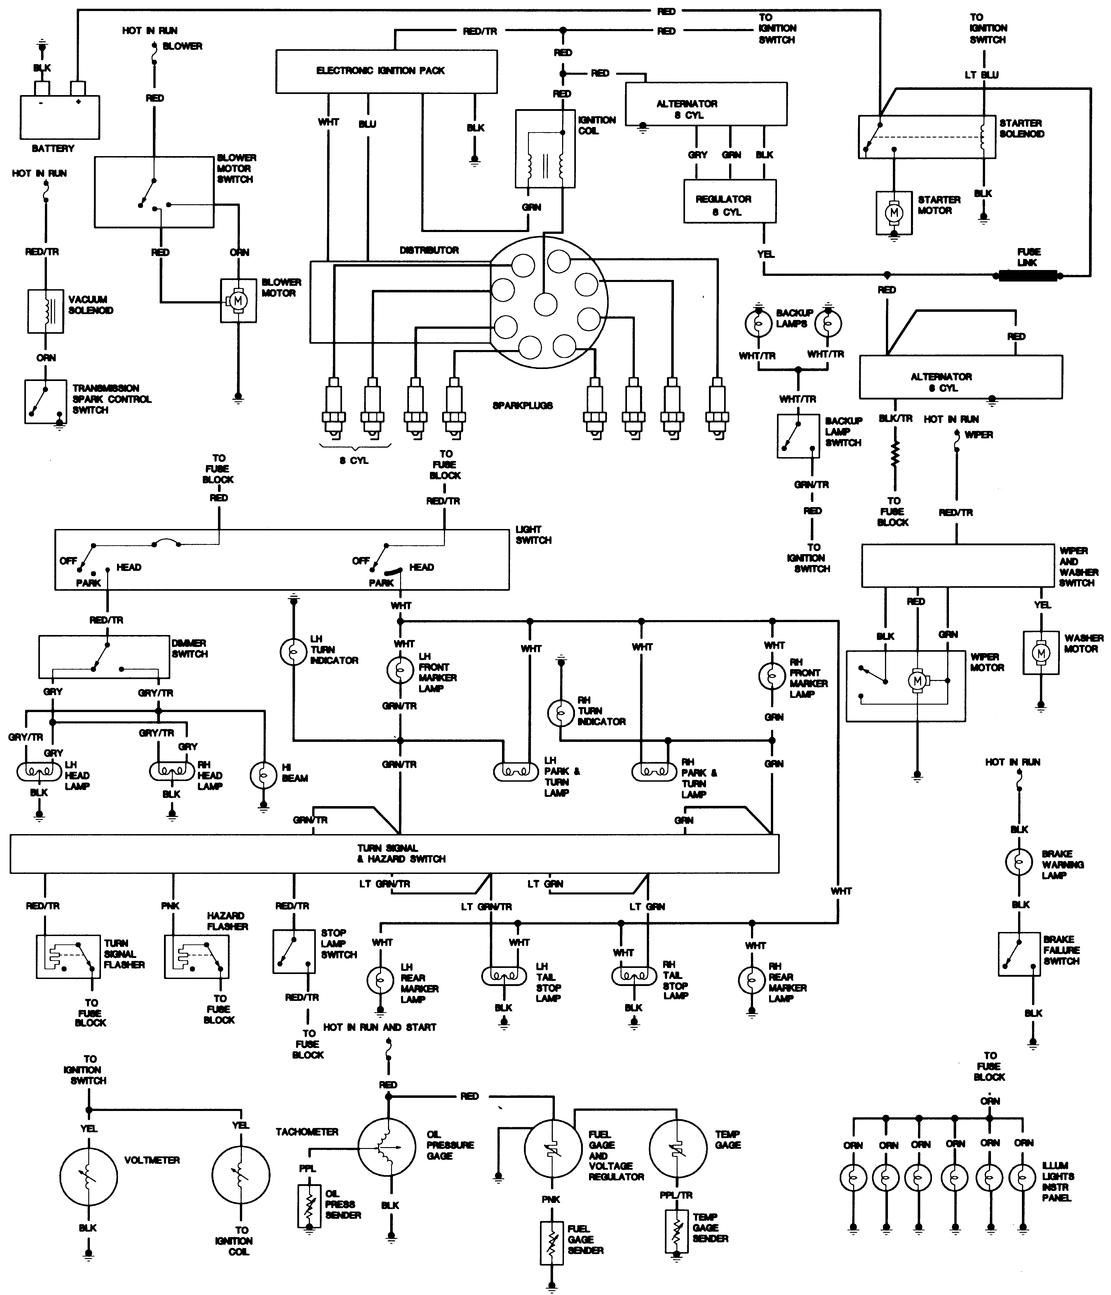 1966 cj5 wiring diagram